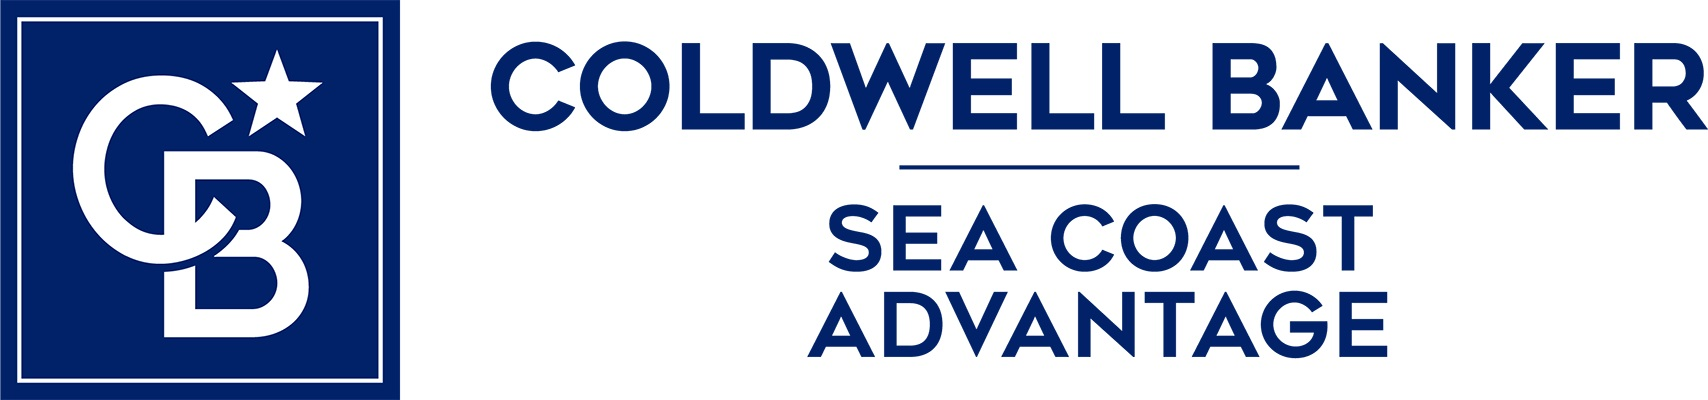 Jack Vereen - Coldwell Banker Sea Coast Advantage Realty